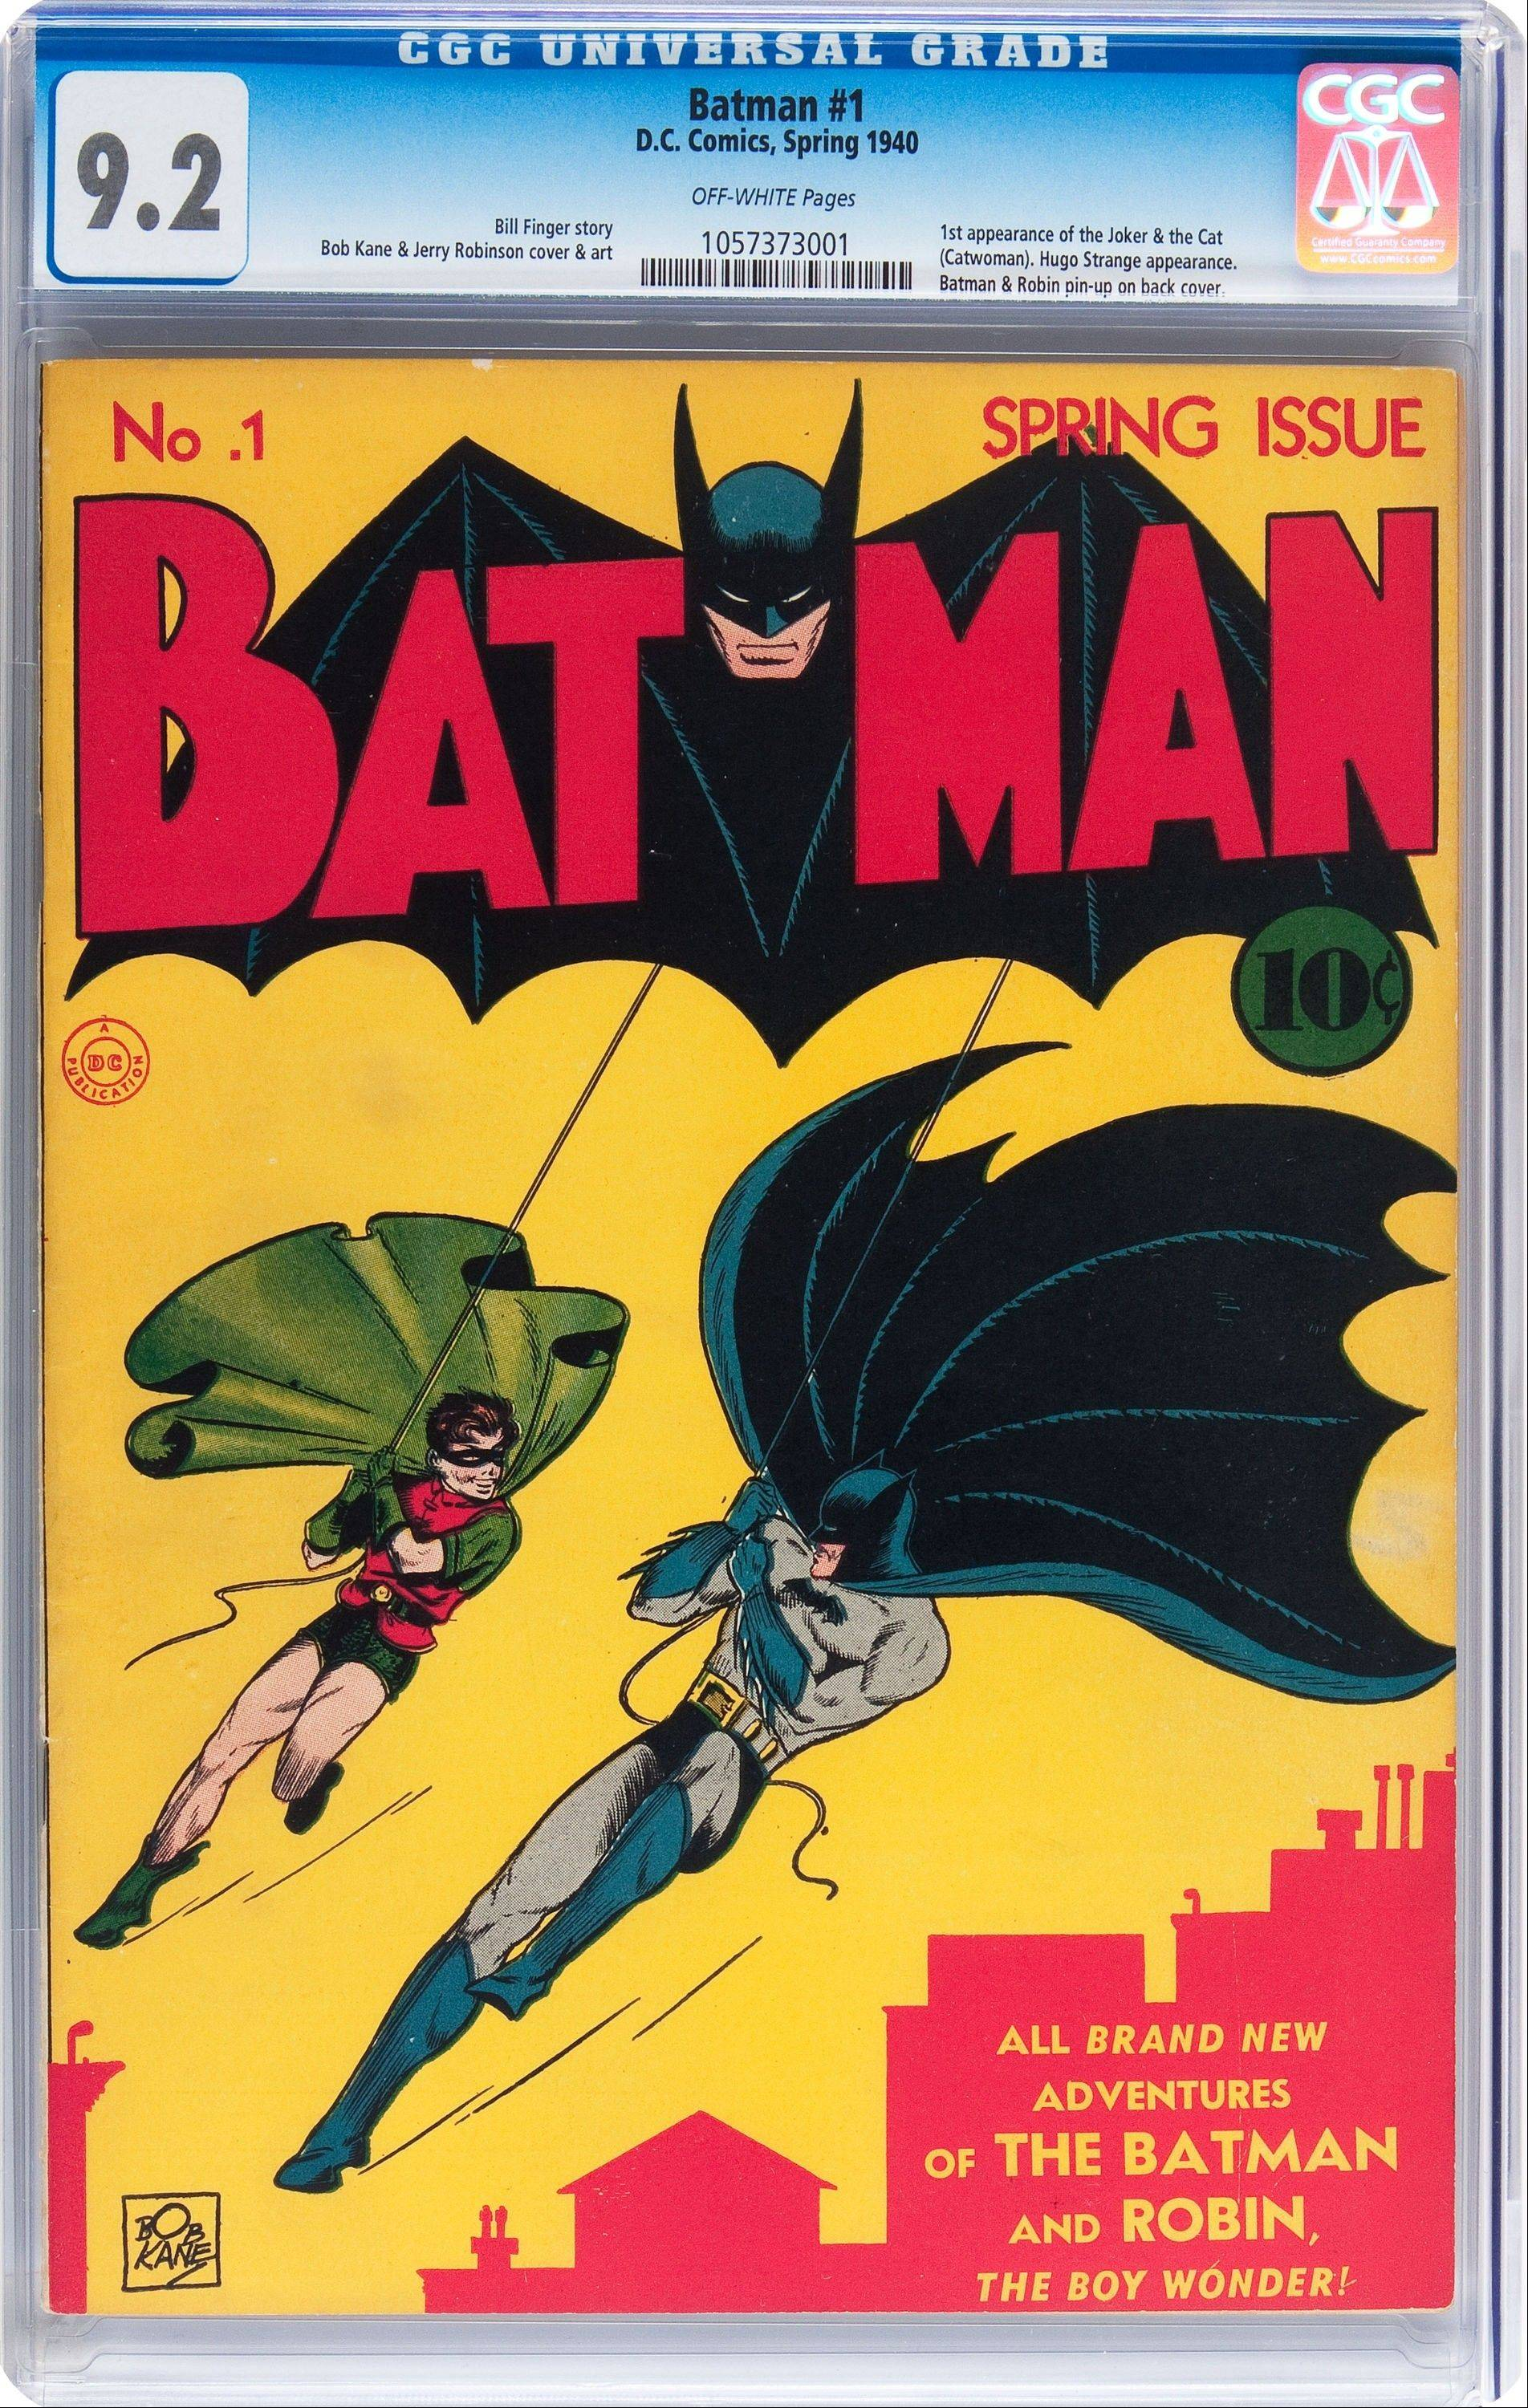 This �Batman� No. 1 from 1940, depicting Batman and Robin swinging in front of a Gotham city skyline is planned to go on auction in August 2013. A similar copy sold for $850,000 in 2012.